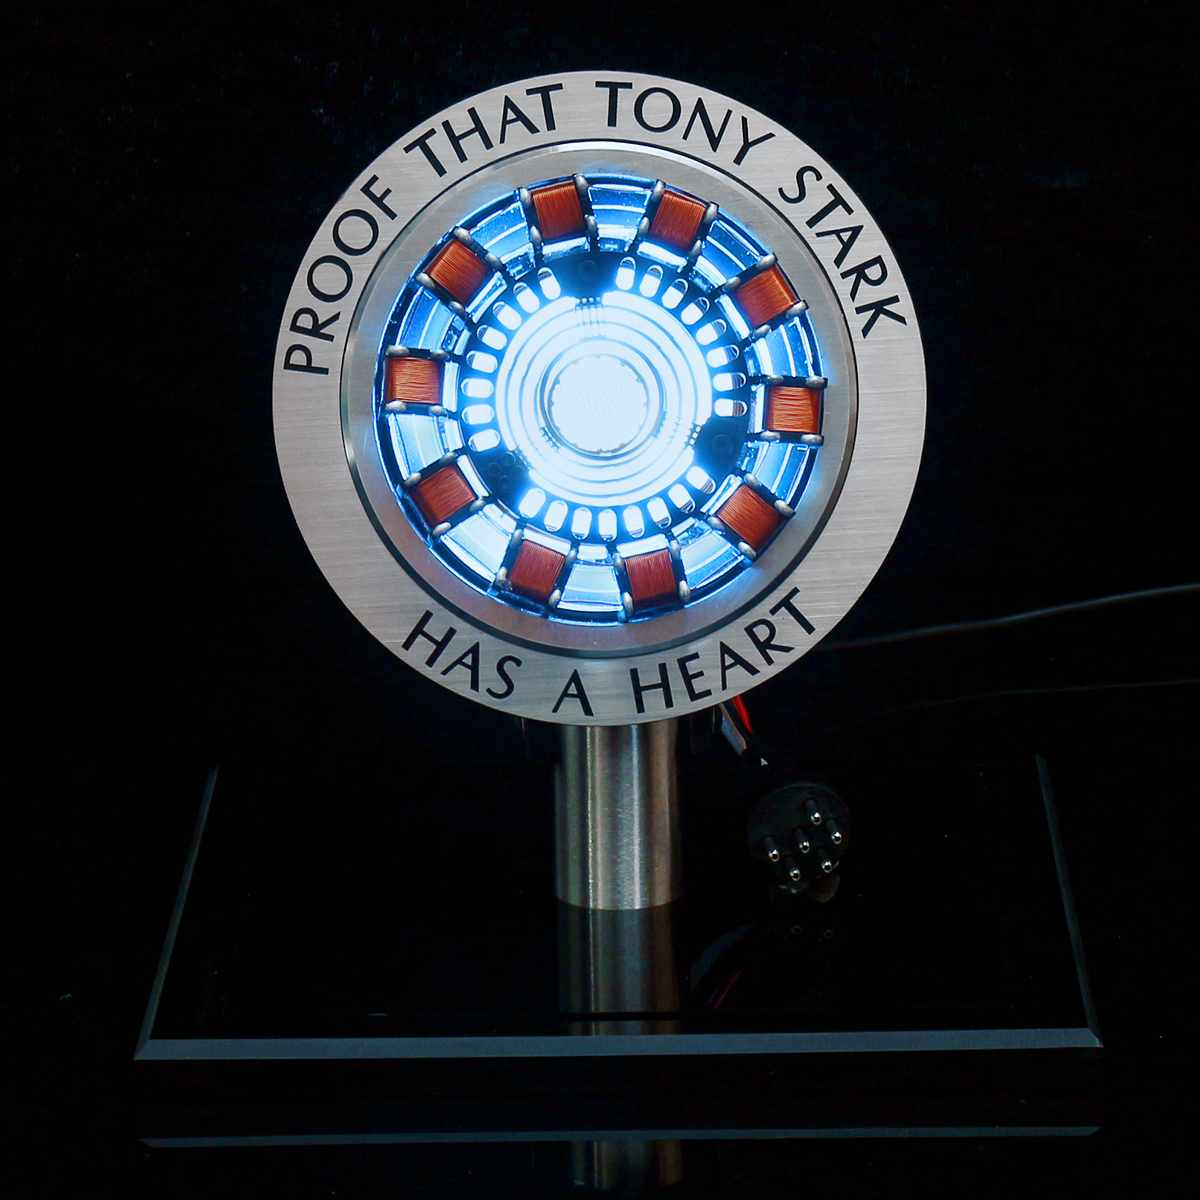 Reactor de Arco Tony Stark con luz LED 2020